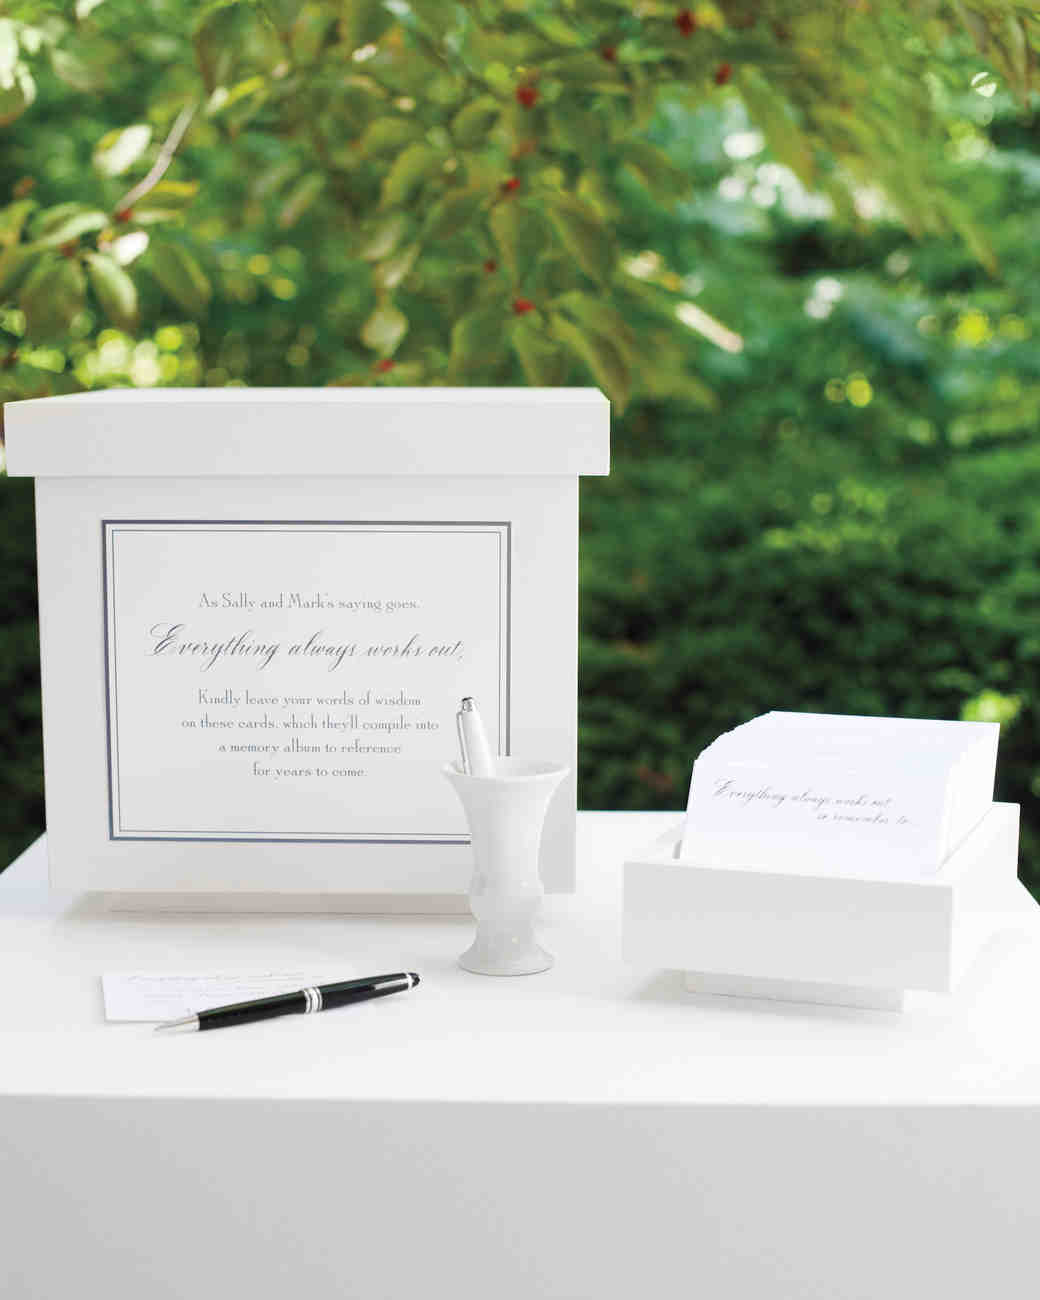 guestbook-on-white-table-3-mwd110629.jpg